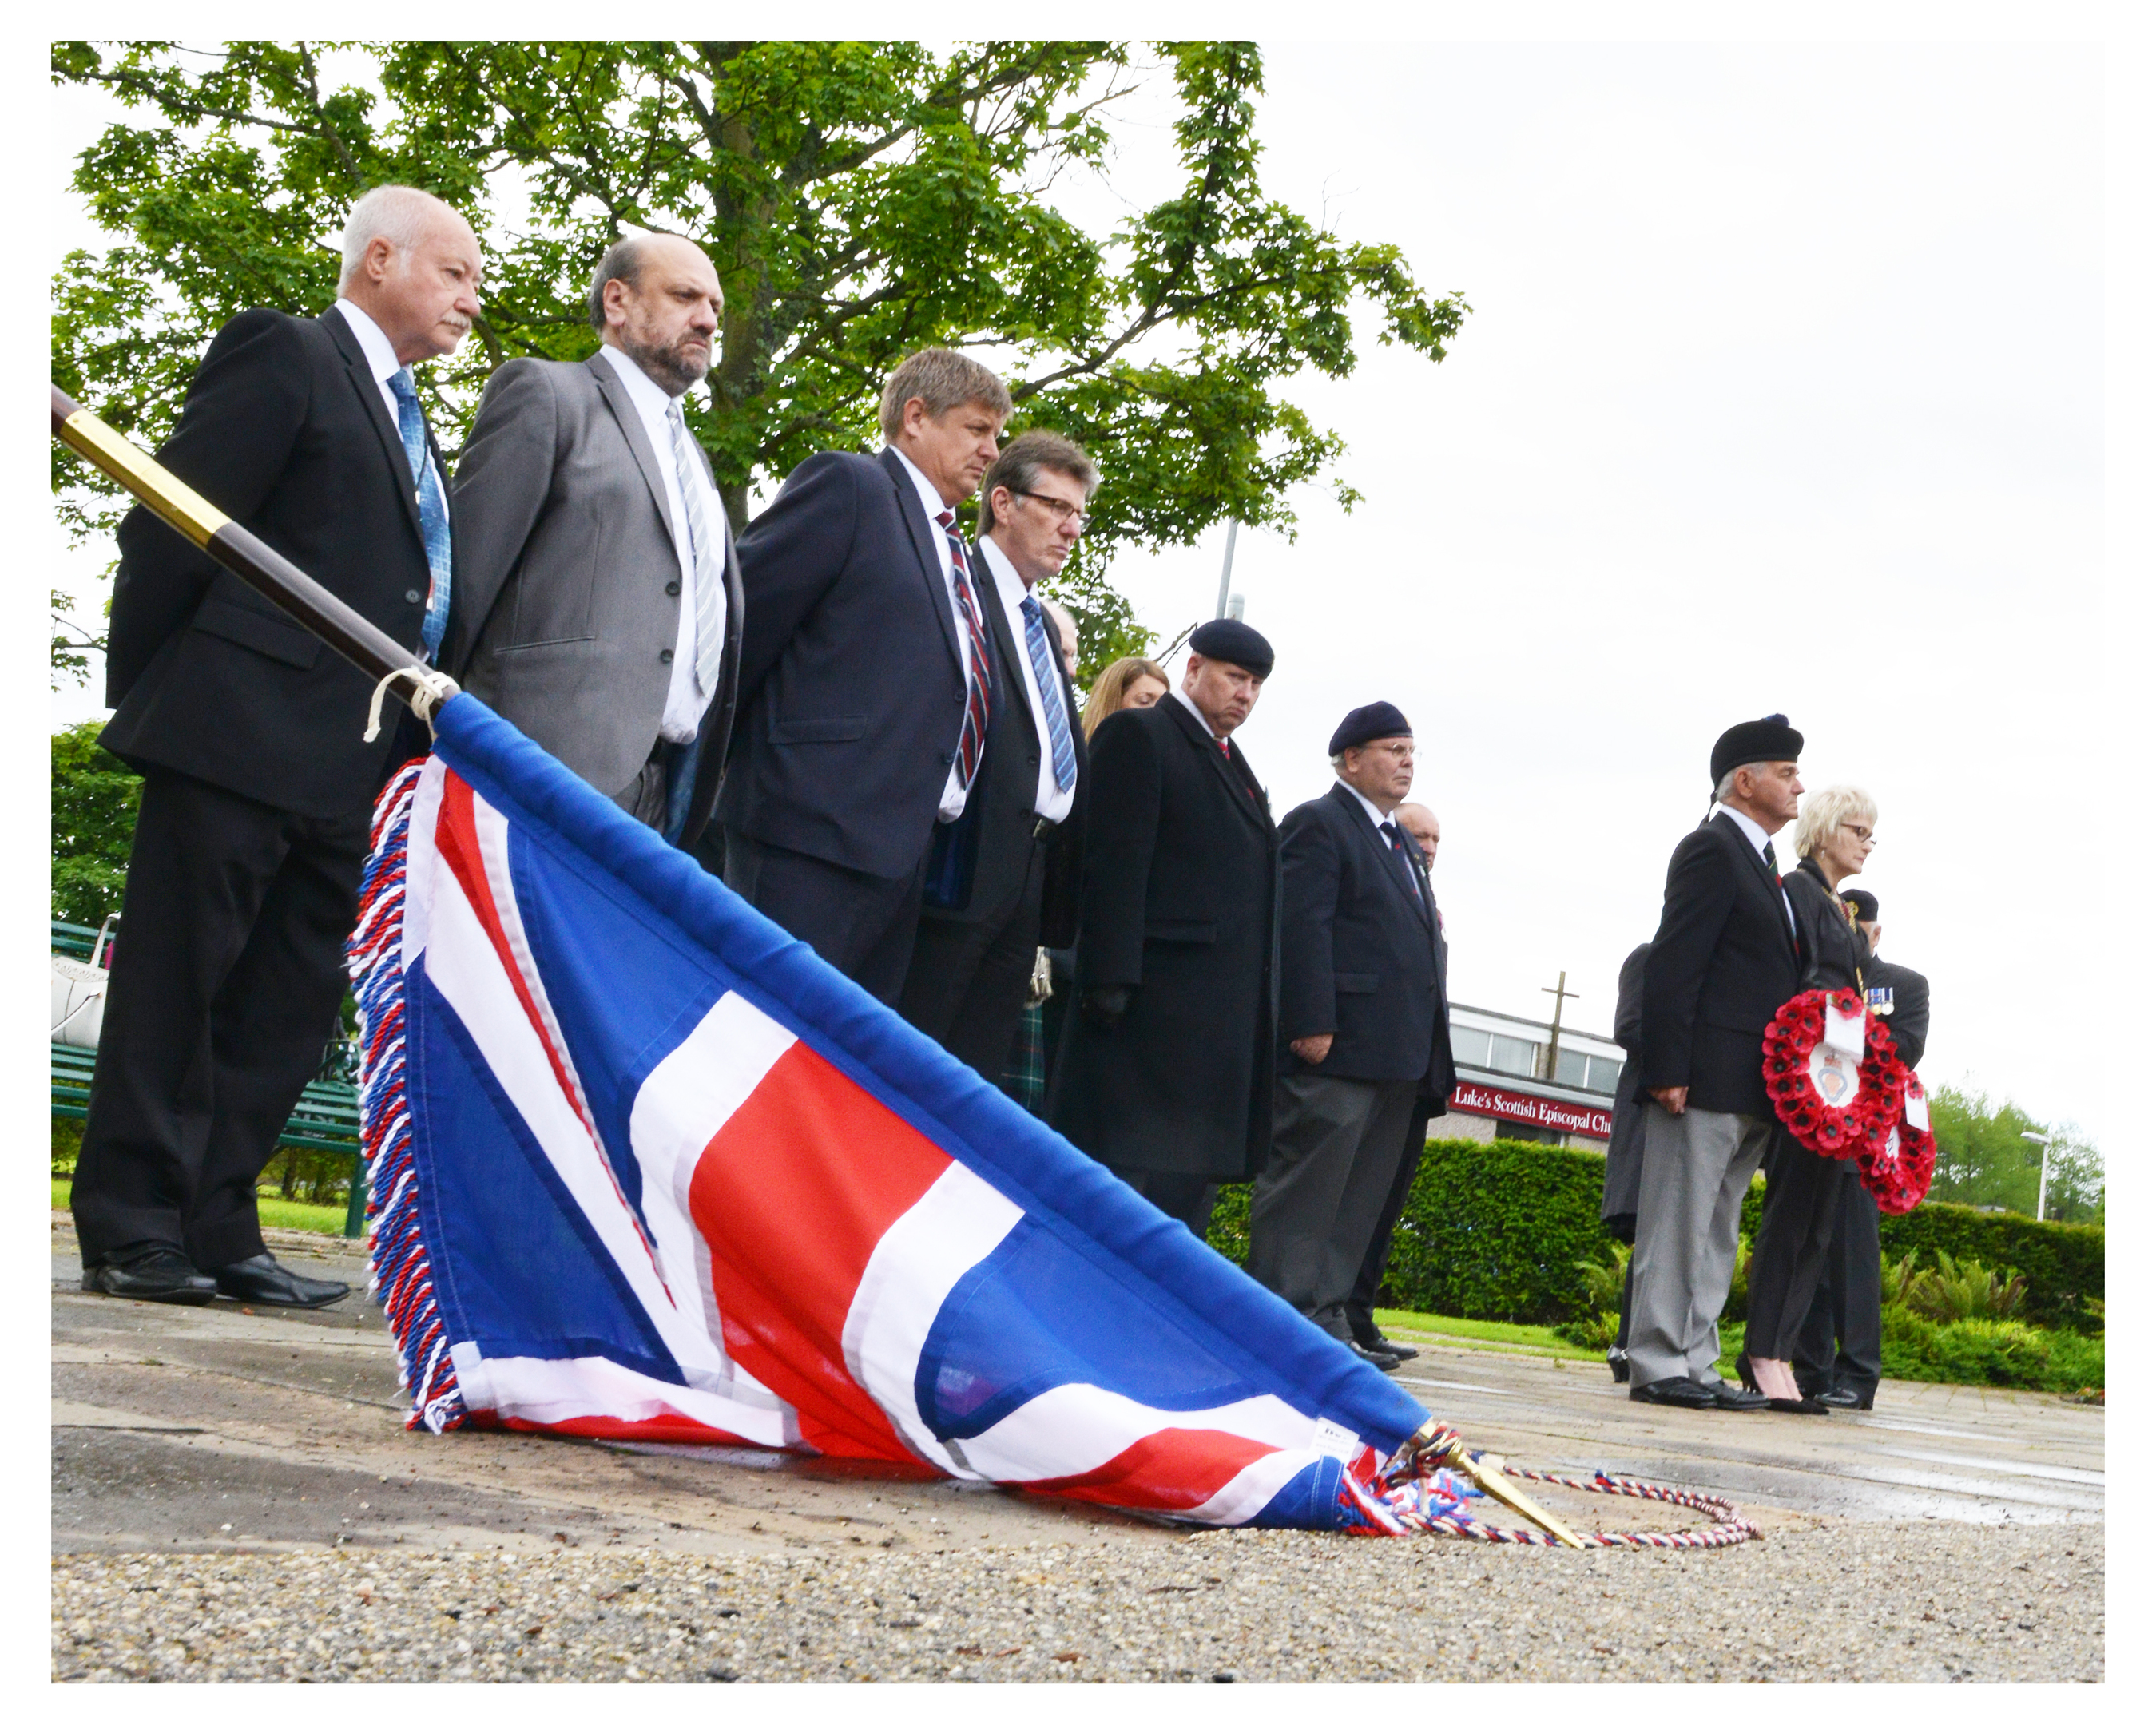 Armed Forces Day was marked in Glenrothes